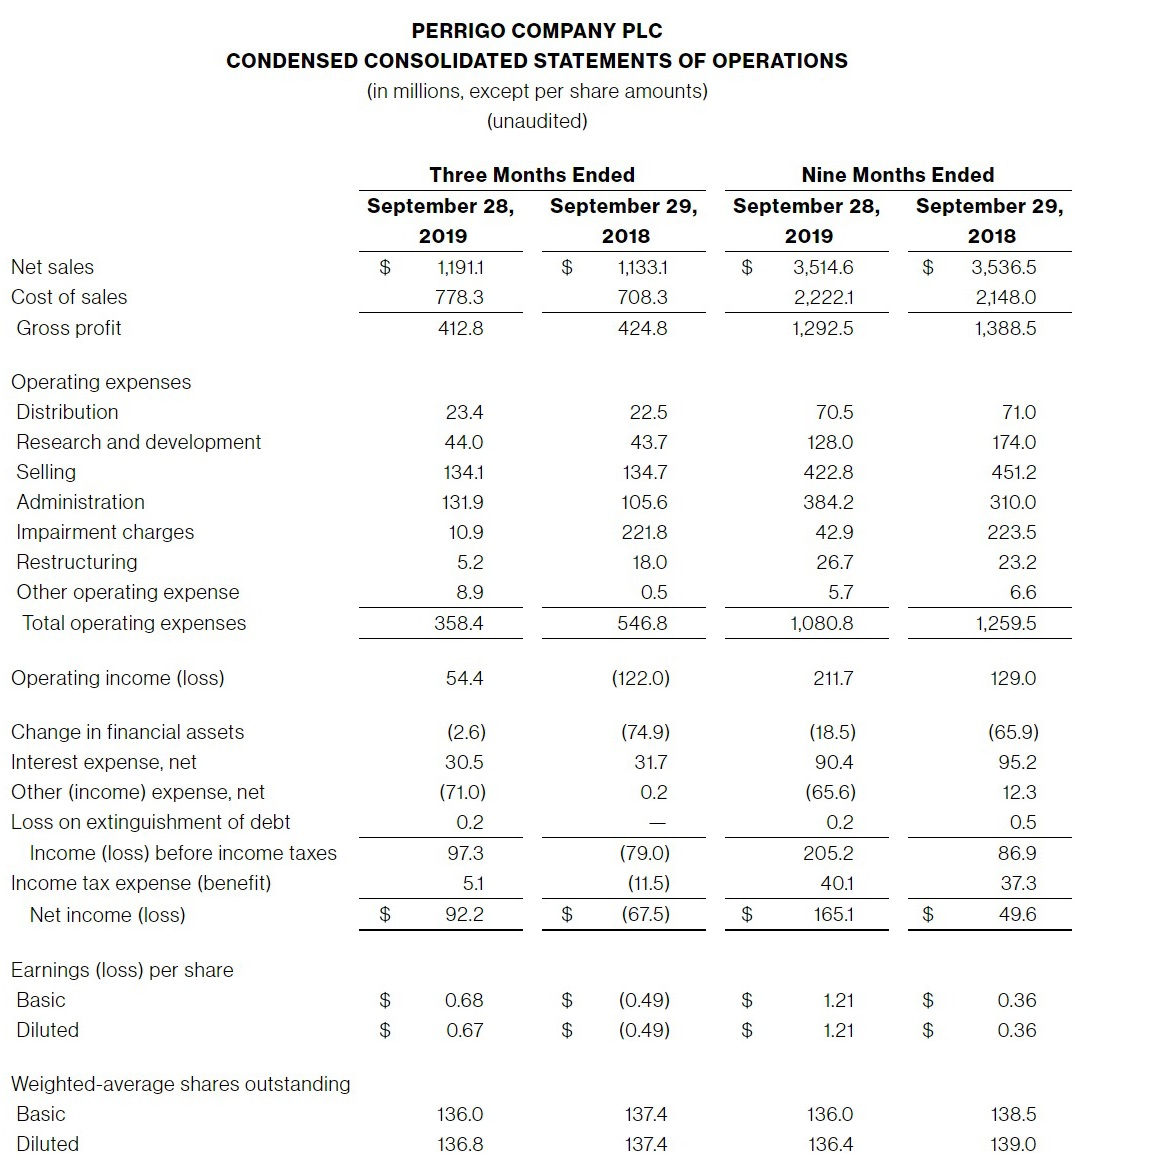 Perrigo-Company-PLC-CONDENSED-CONSOLIDATED-STATEMENTS-OF-OPERATIONS